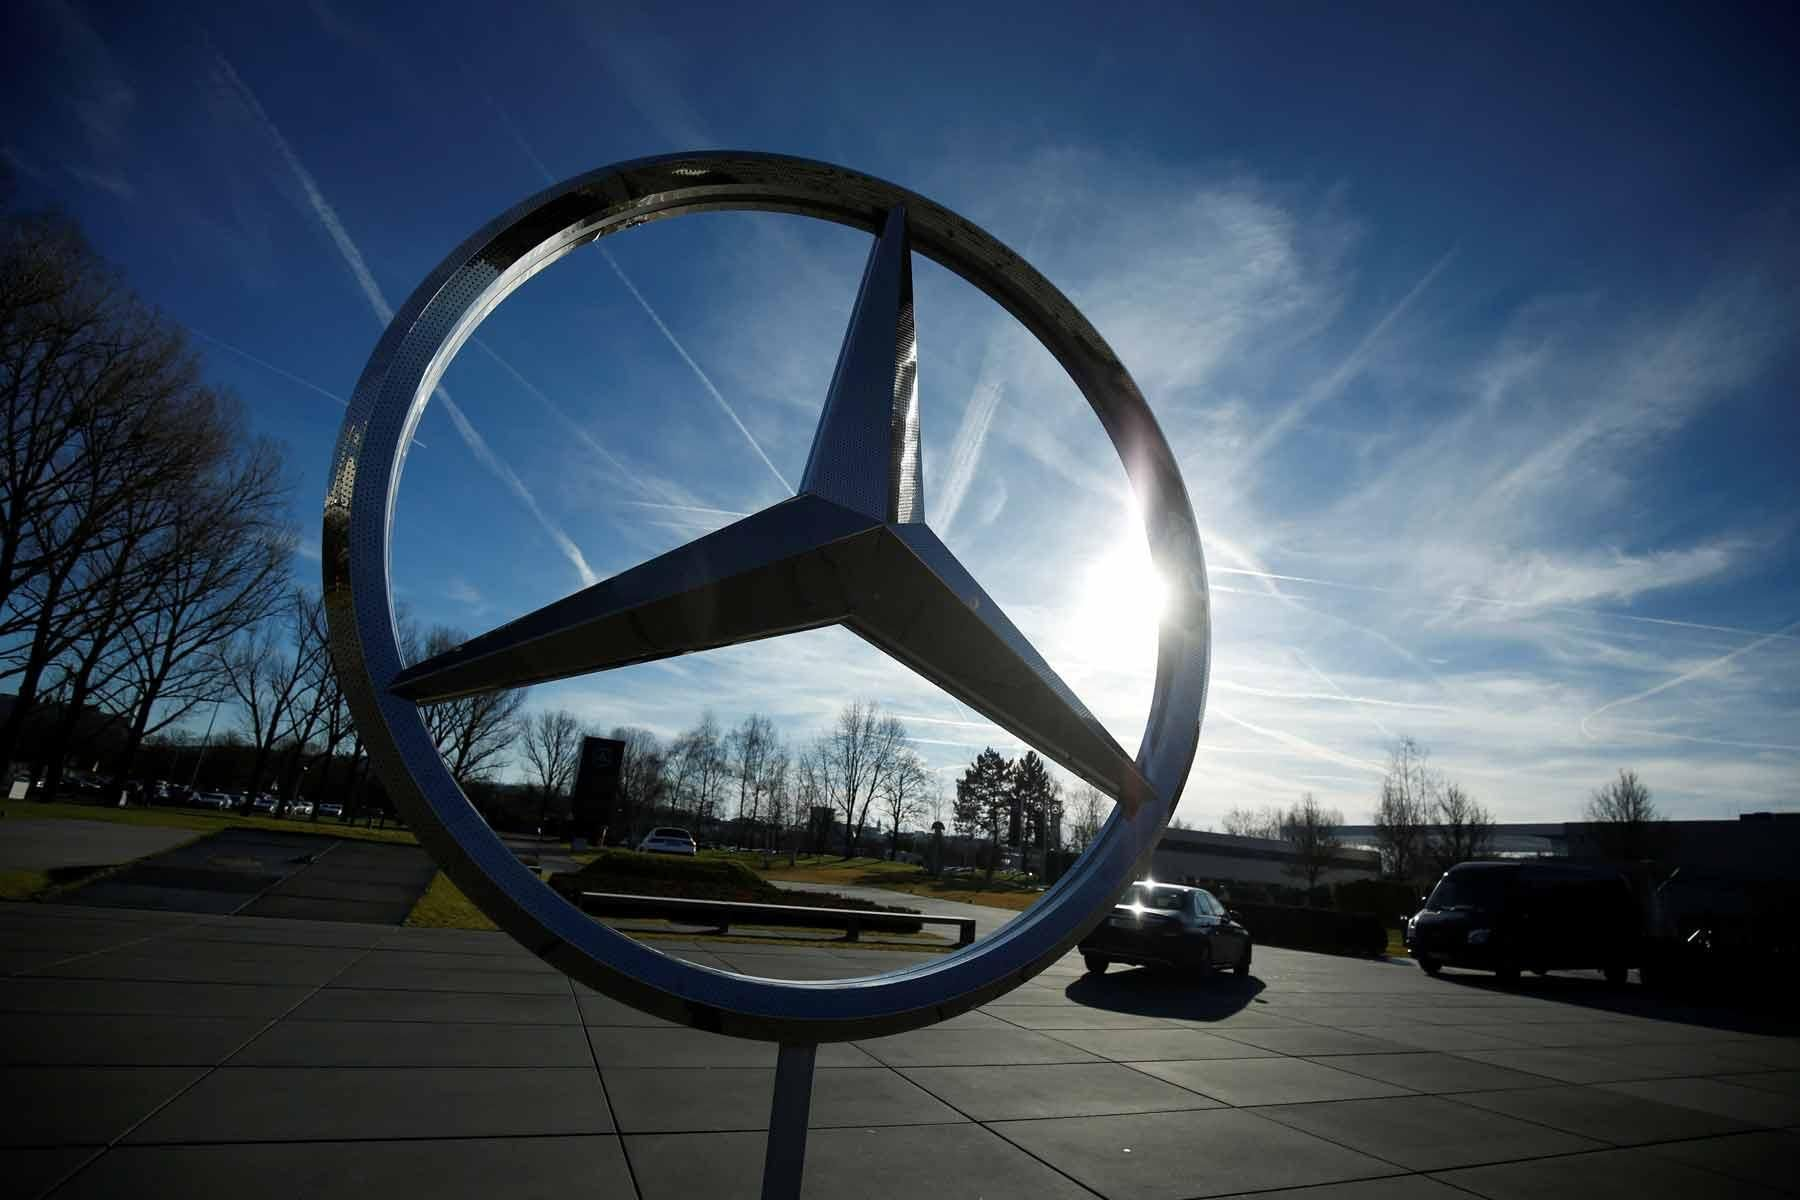 U S October 2018 Luxury Auto Sales Mercedes Benz Dips But Stays Ahead Of Bmw Http Www Autonews C Automotive Solutions Automotive Sales Moving To Las Vegas